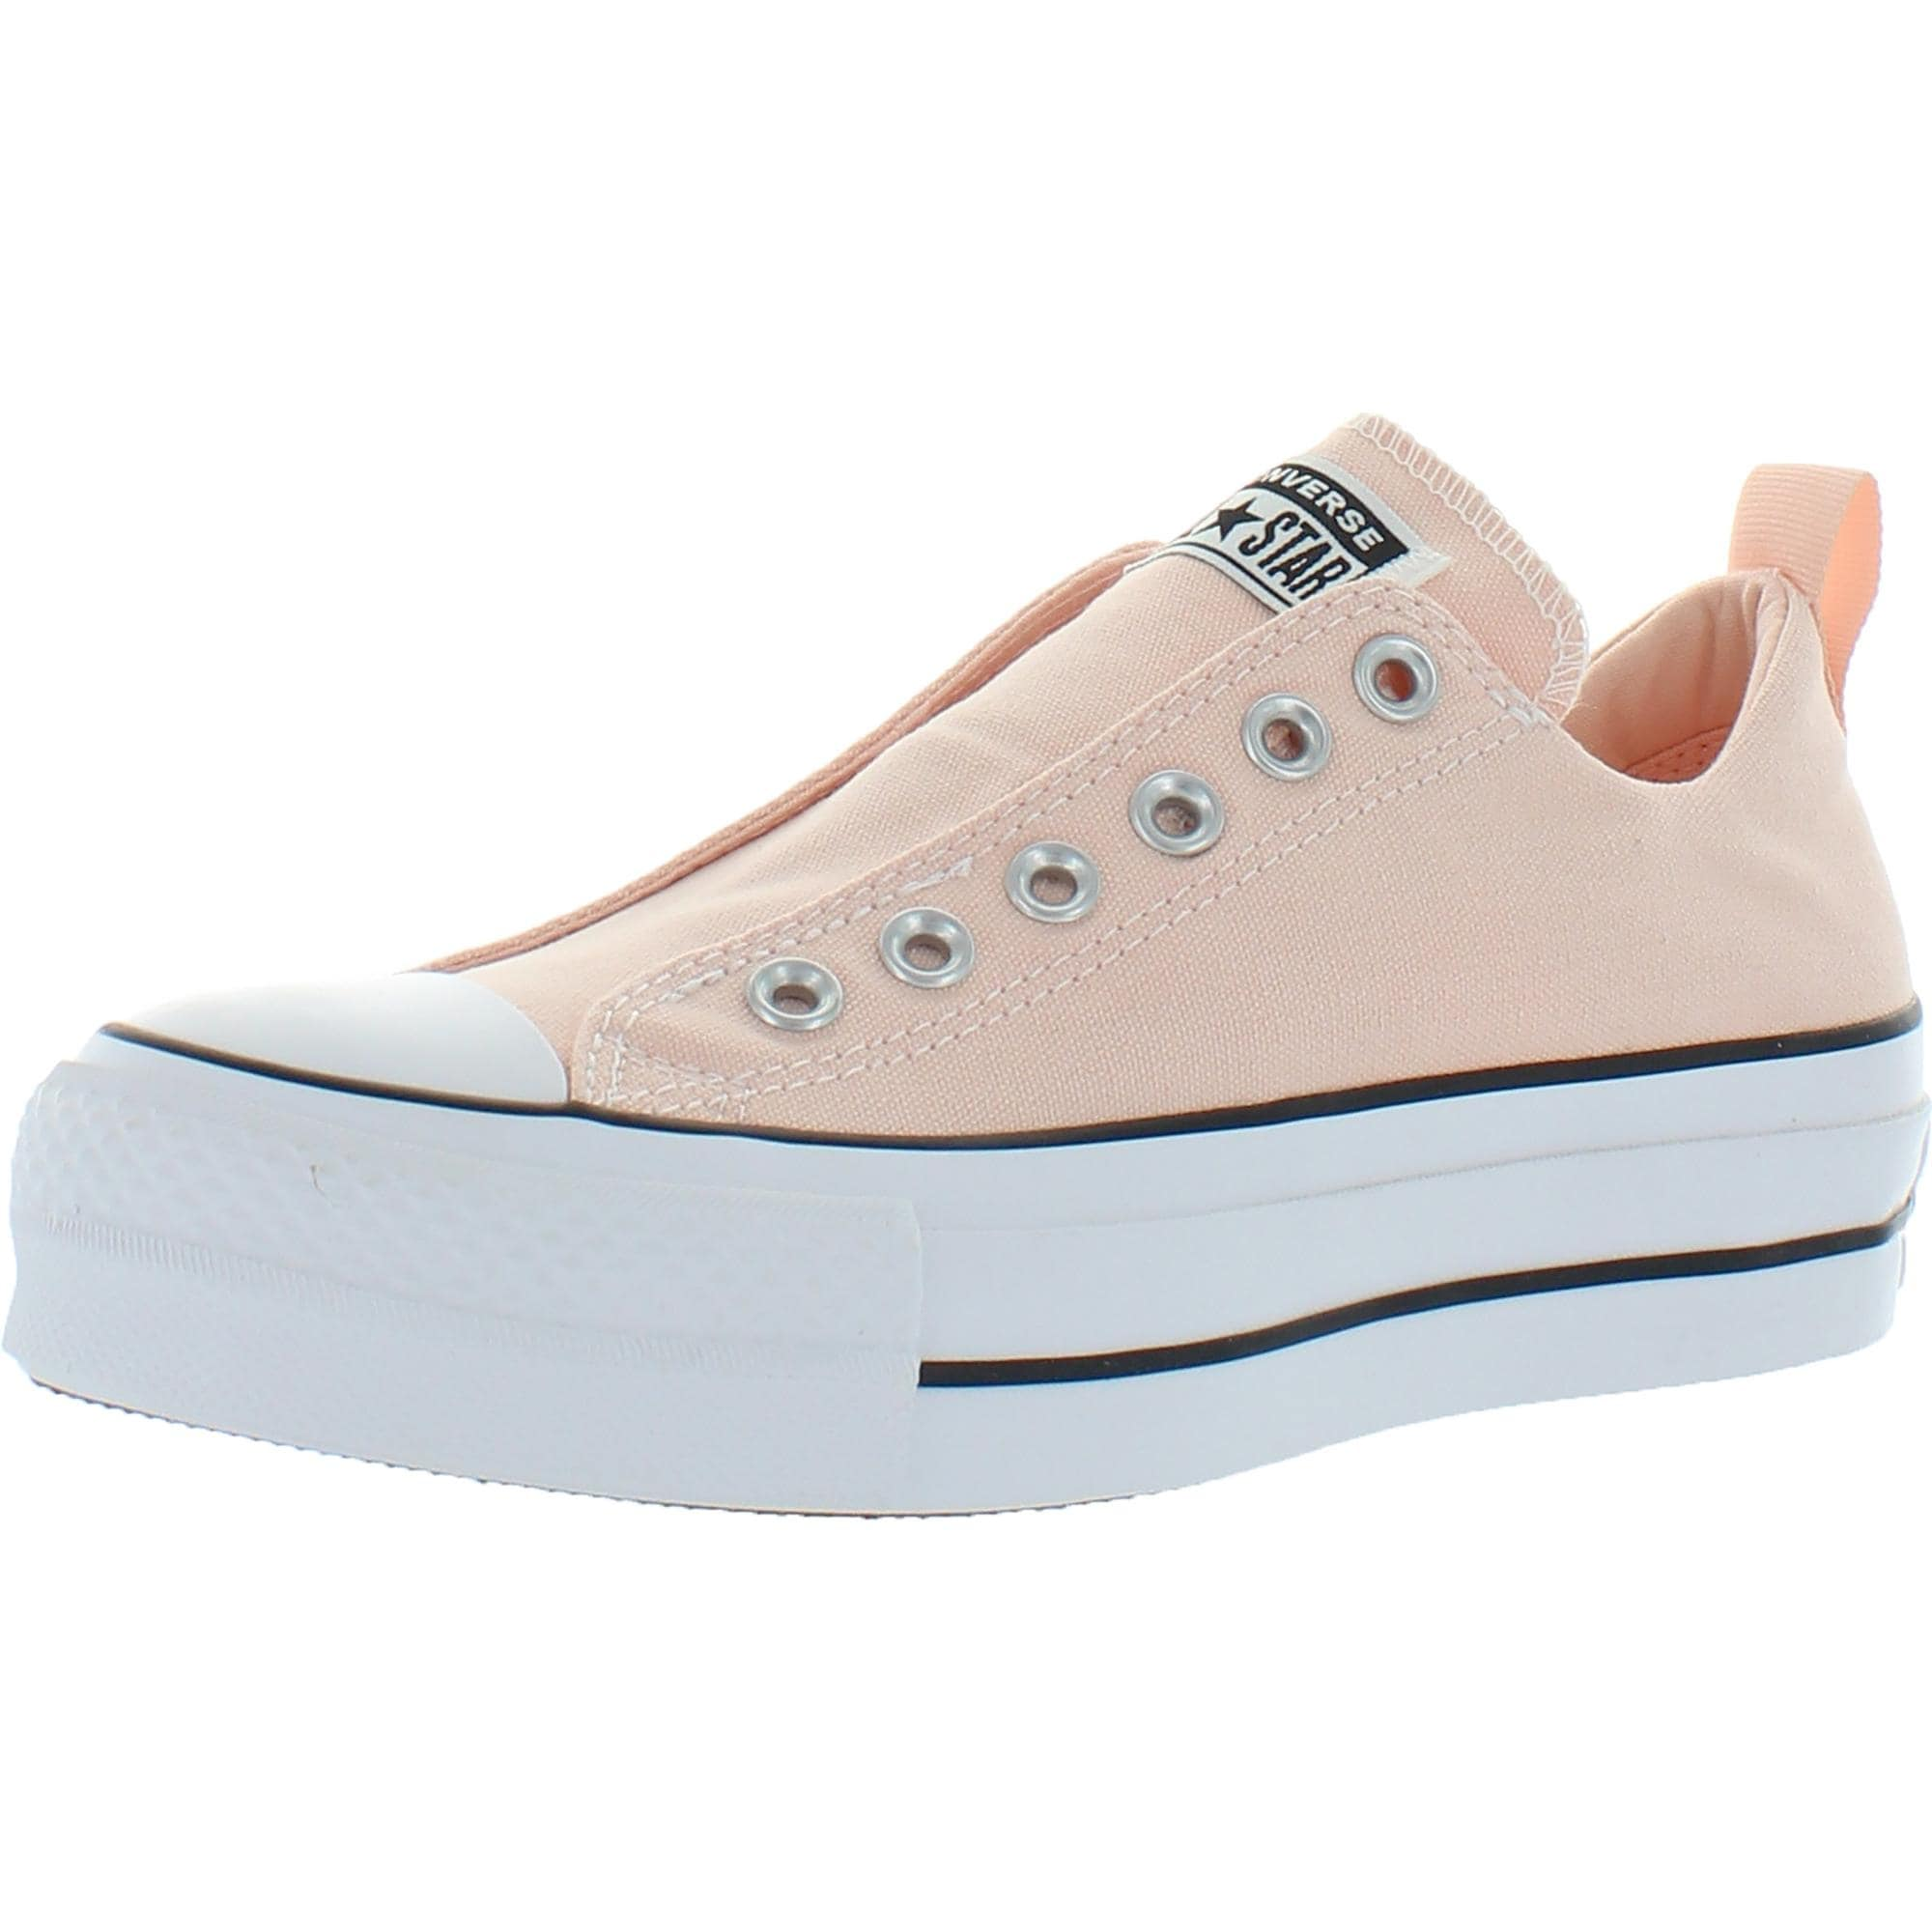 Playa reacción suficiente  Converse Chuck Taylor All Star Lift Slip Canvas Low Top Fashion Sneaker -  Washed Coral/White/Black - Overstock - 32339195